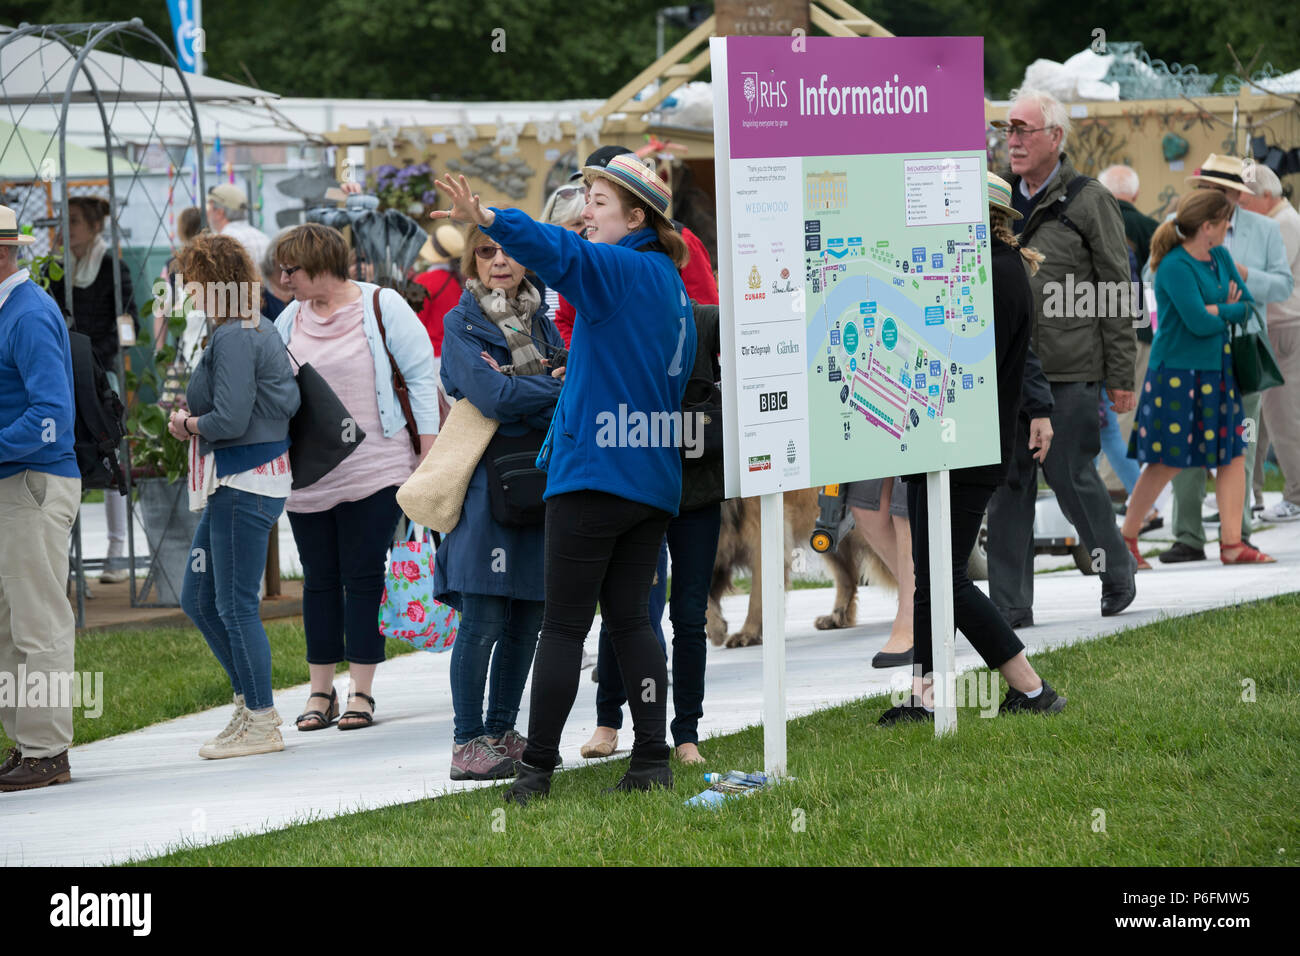 RHS volunteer working by large information board map, pointing, directing & guiding female showground visitor - Chatsworth Flower Show, Derbyshire, UK - Stock Image